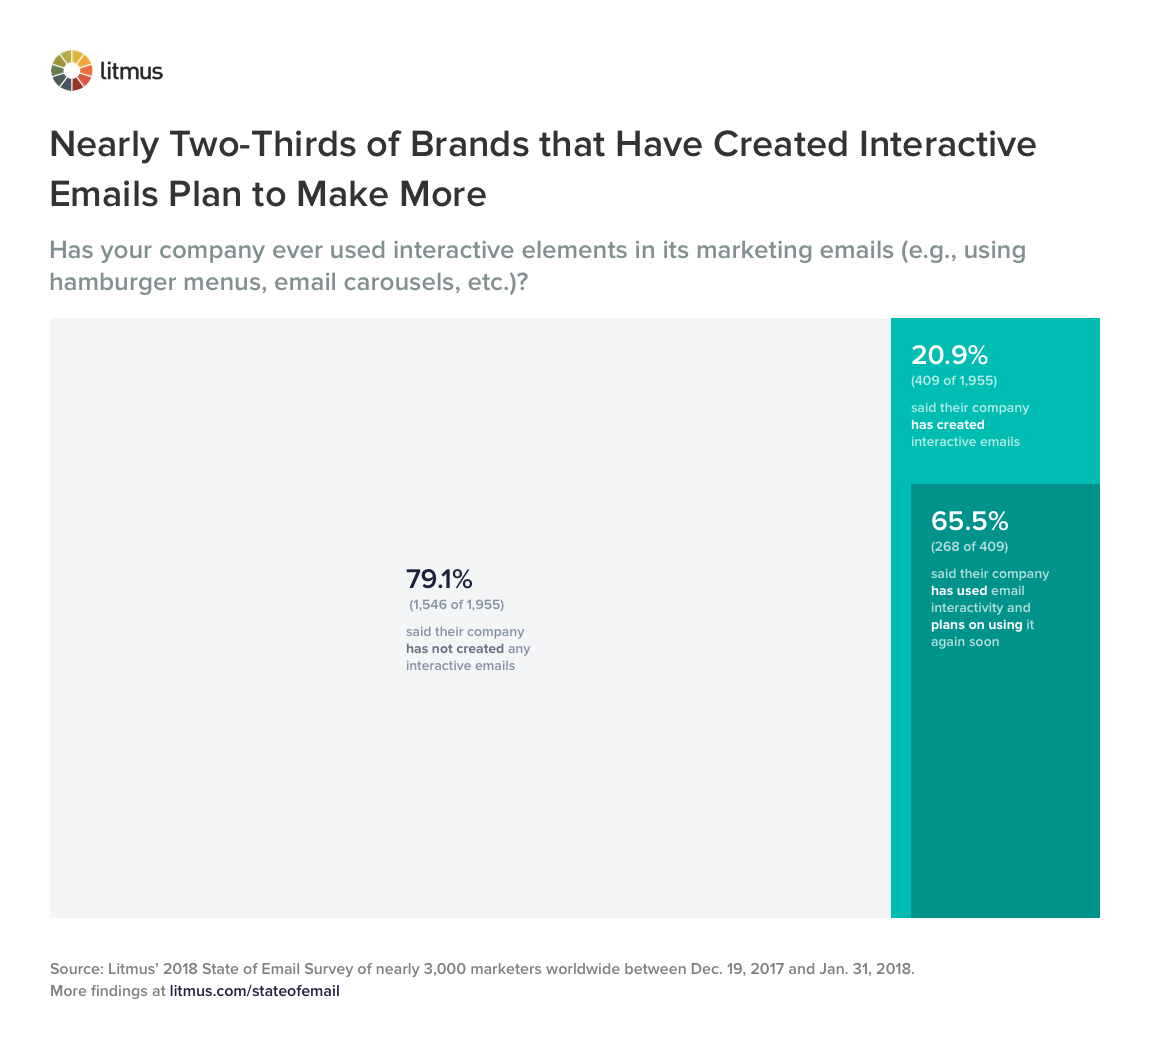 Nearly Two-Thirds of Brands that Have Created Interactive Emails Plan to Make More